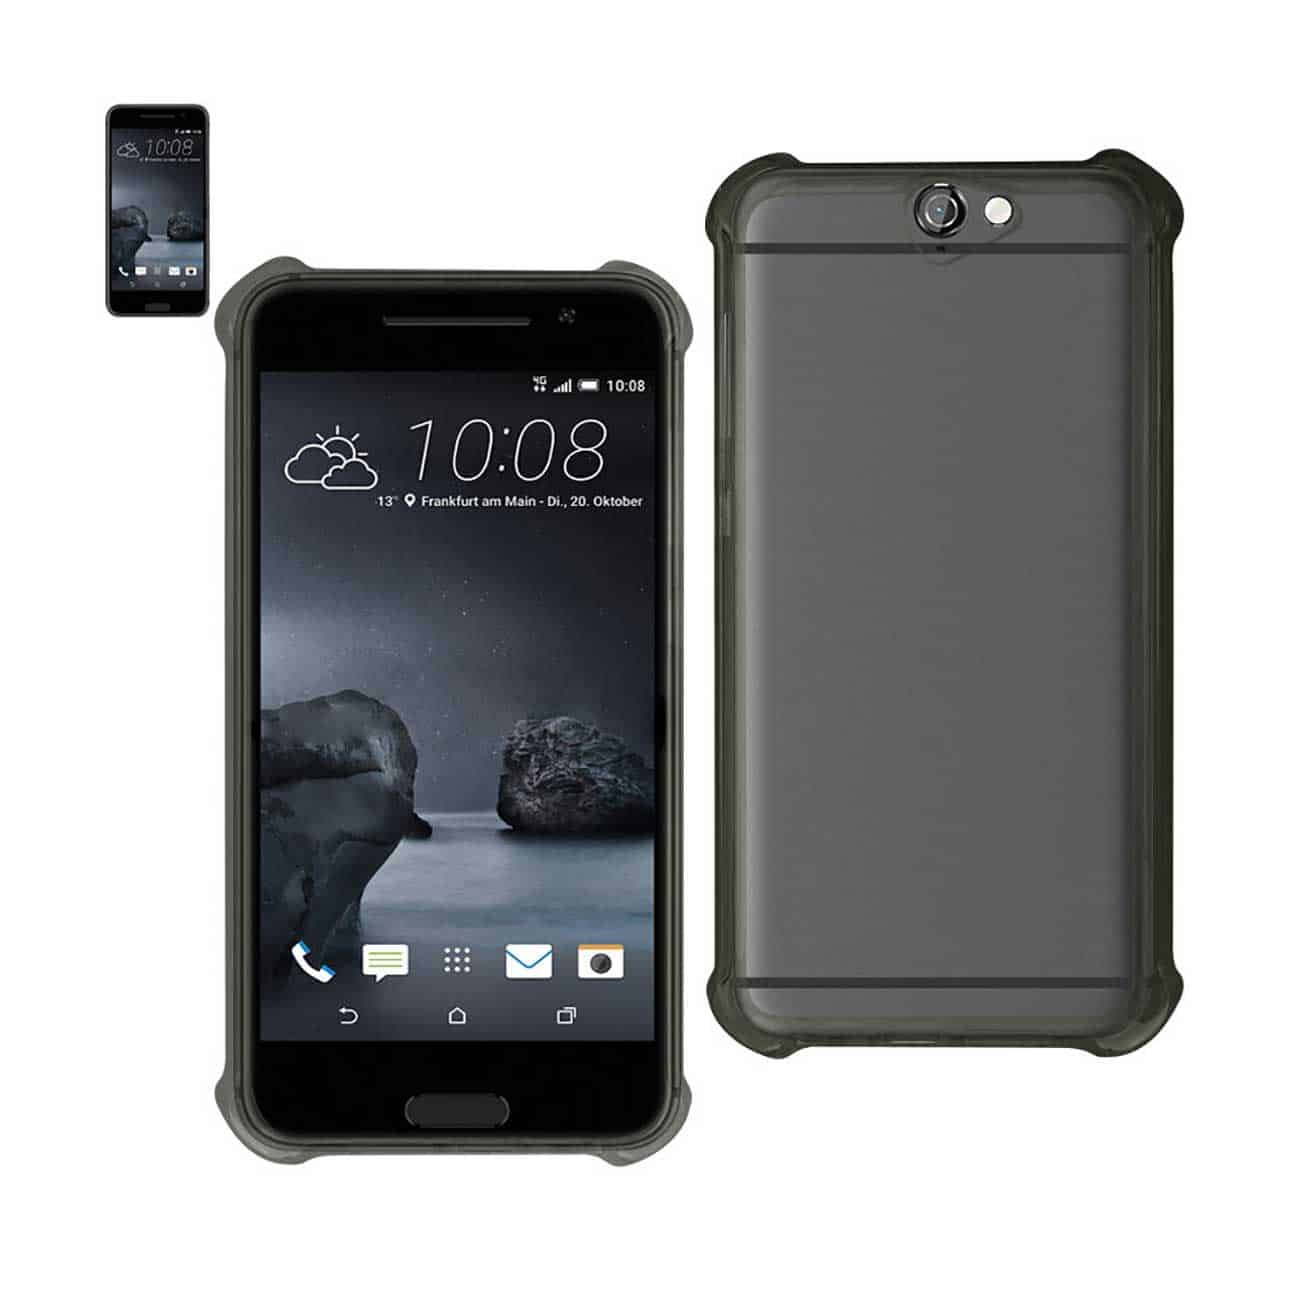 HTC ONE A9 MIRROR EFFECT CASE WITH AIR CUSHION PROTECTION IN CLEAR BLACK